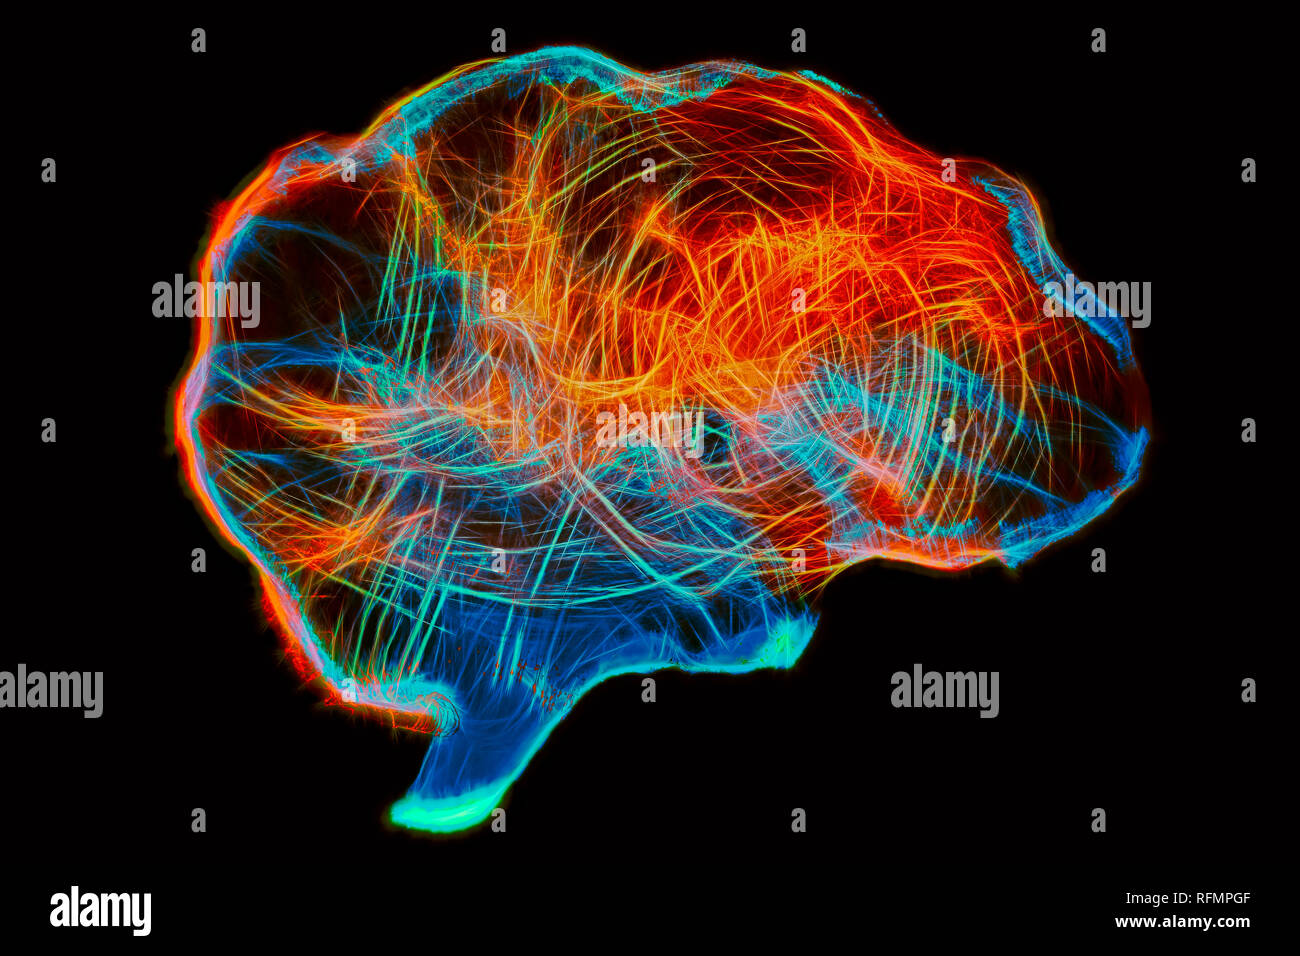 Representation of human brain by light painting technique - Stock Image